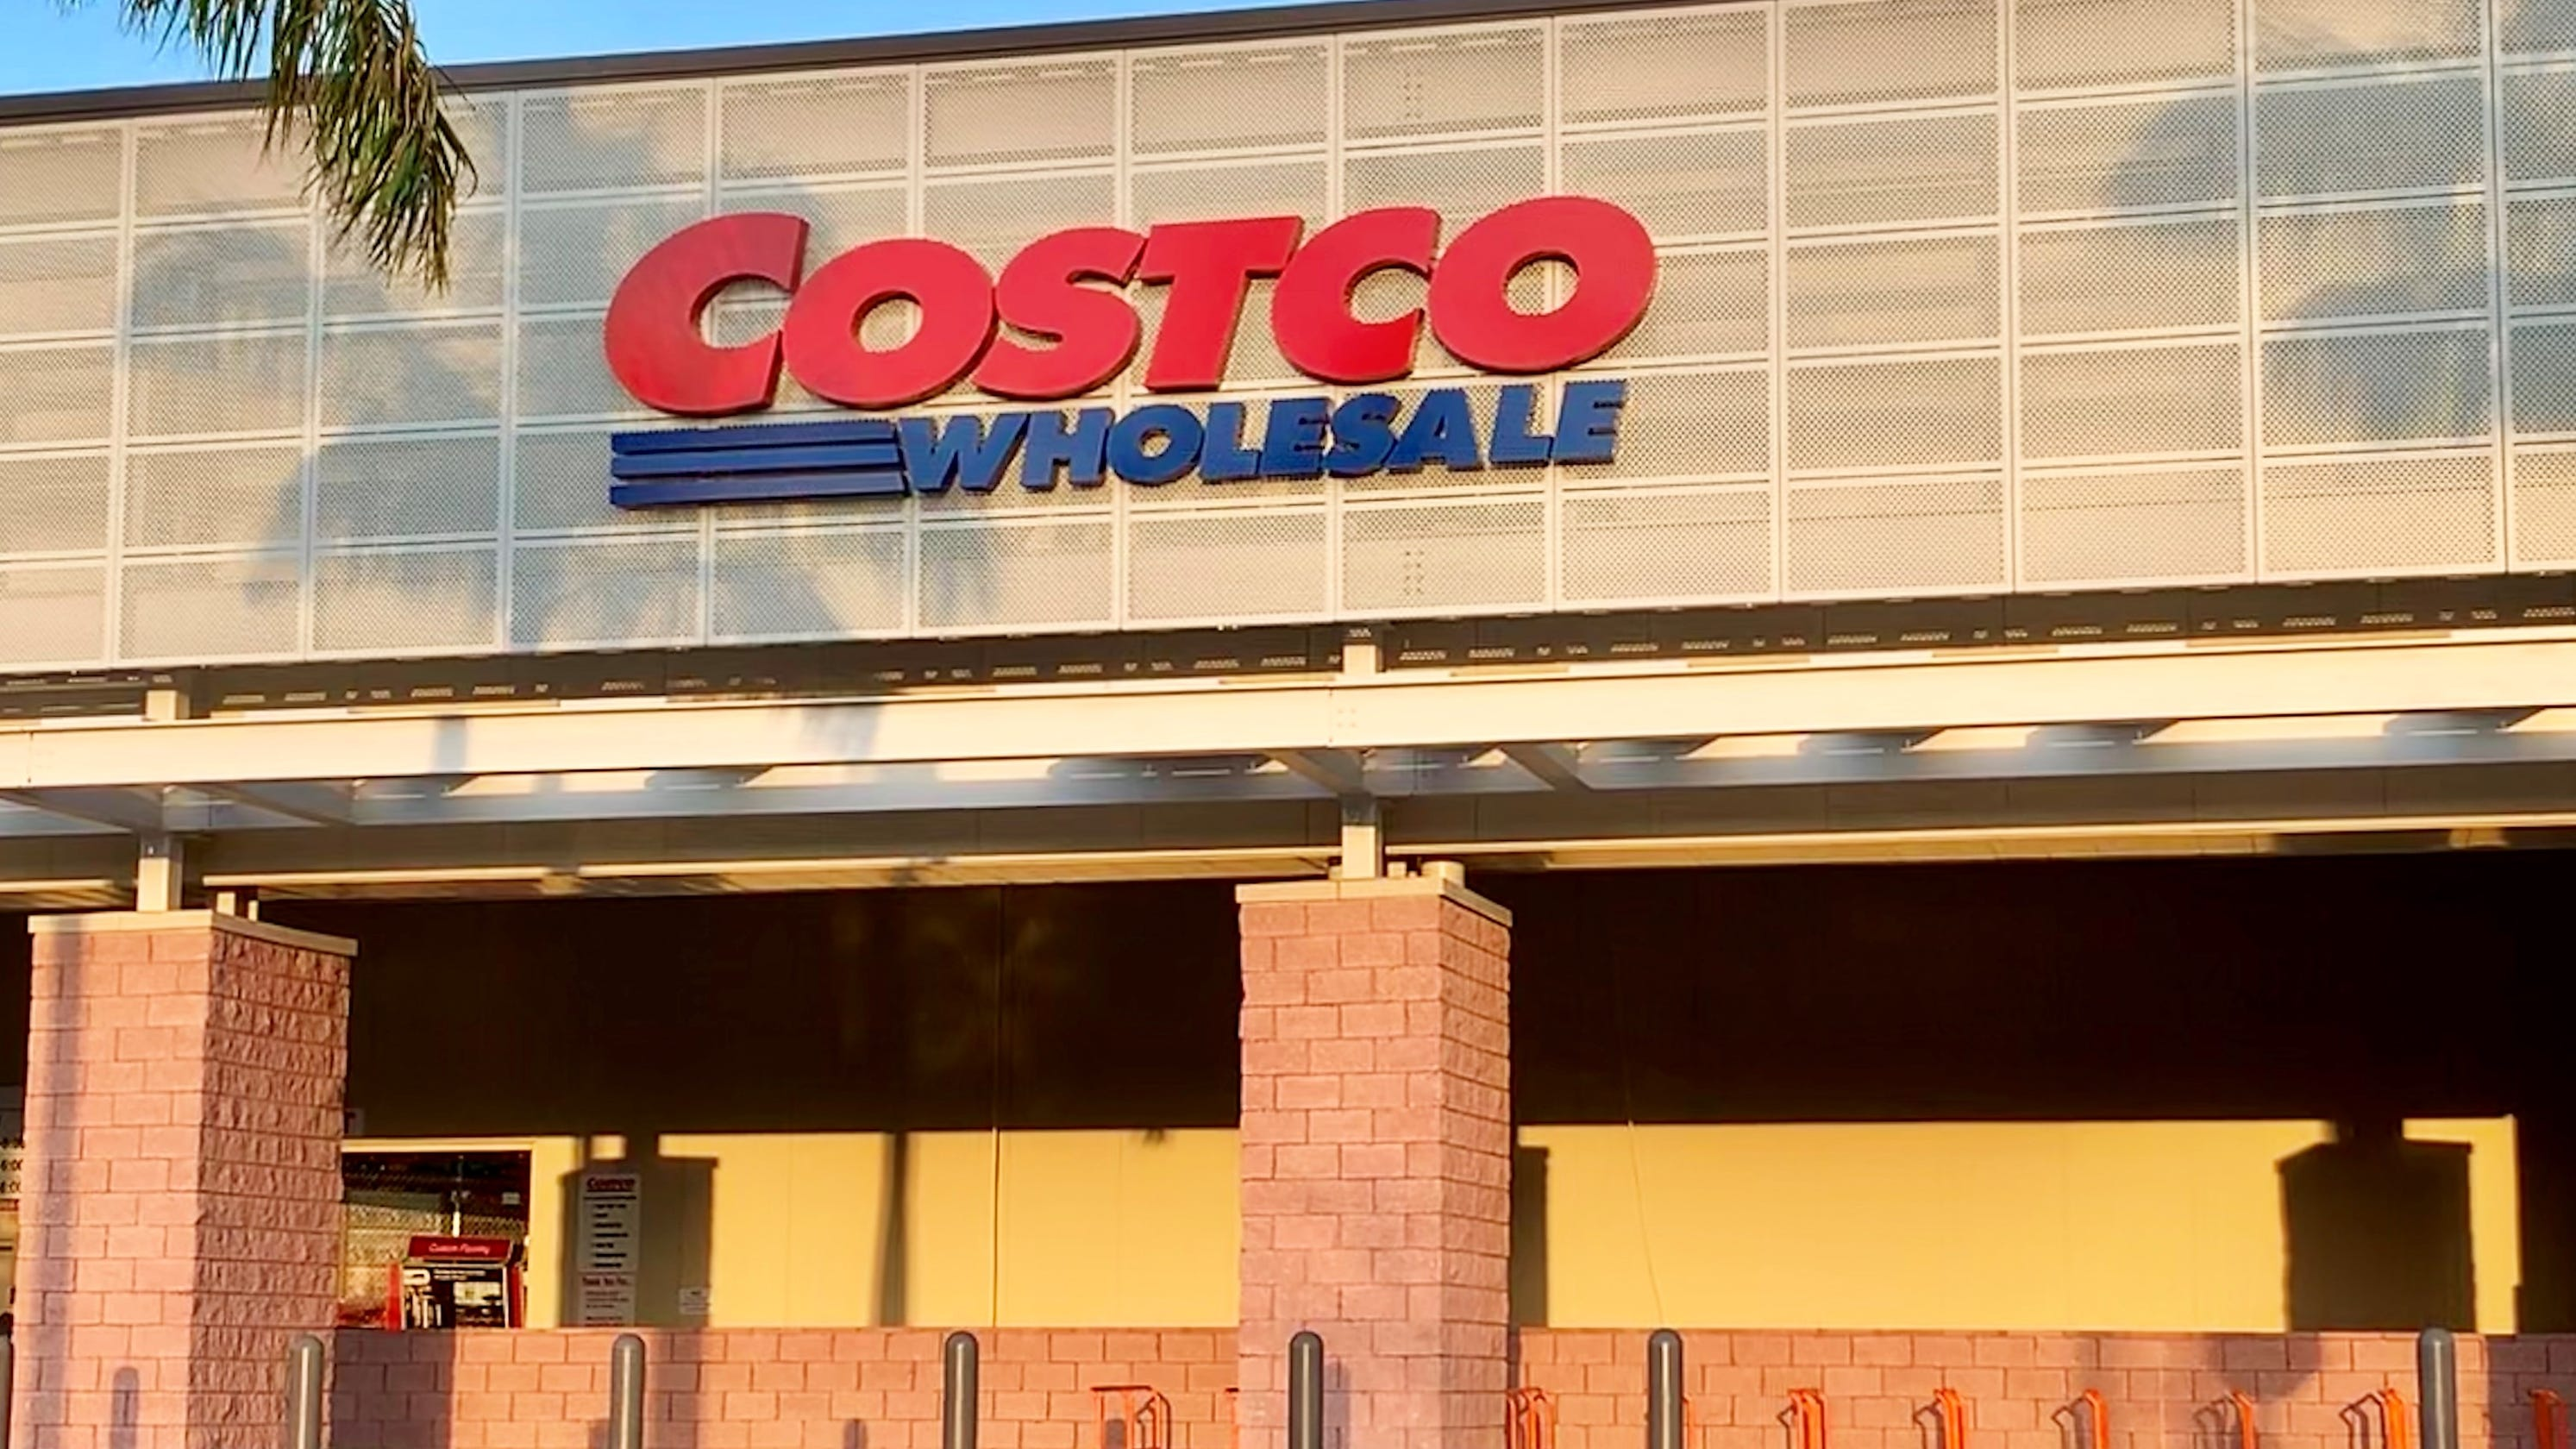 'I hope we have enough butter': Costco selling gigantic lobster claws at some stores, shoppers say